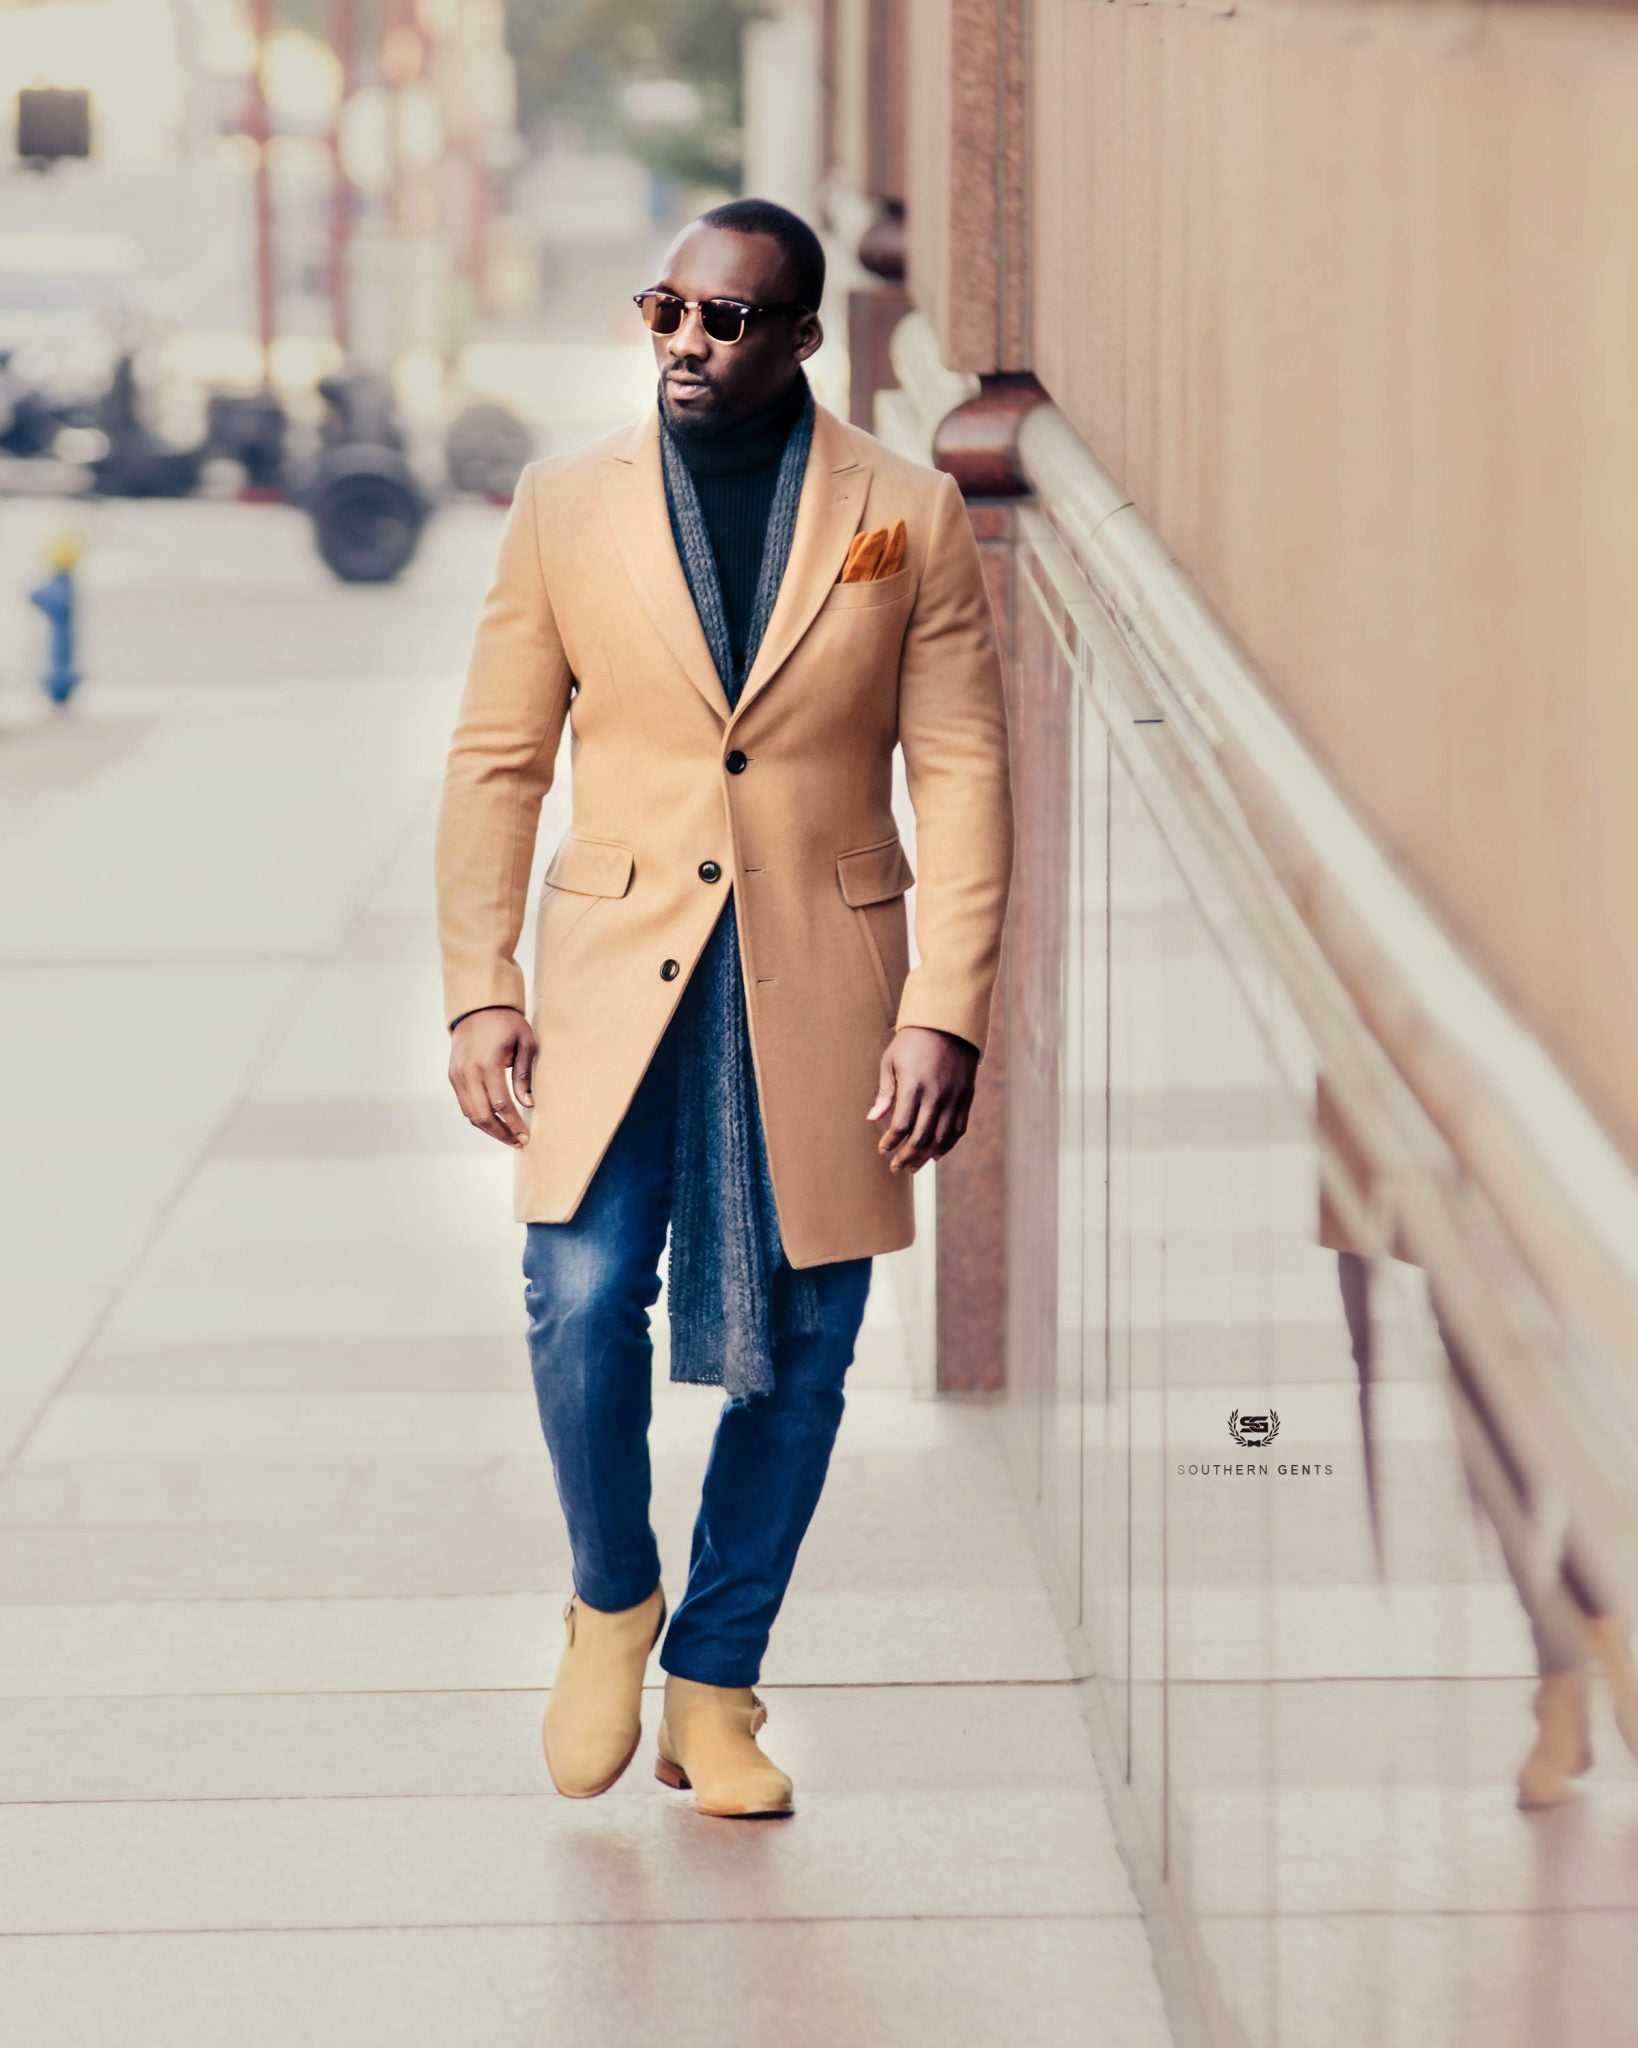 Southern Gents Camel Coat